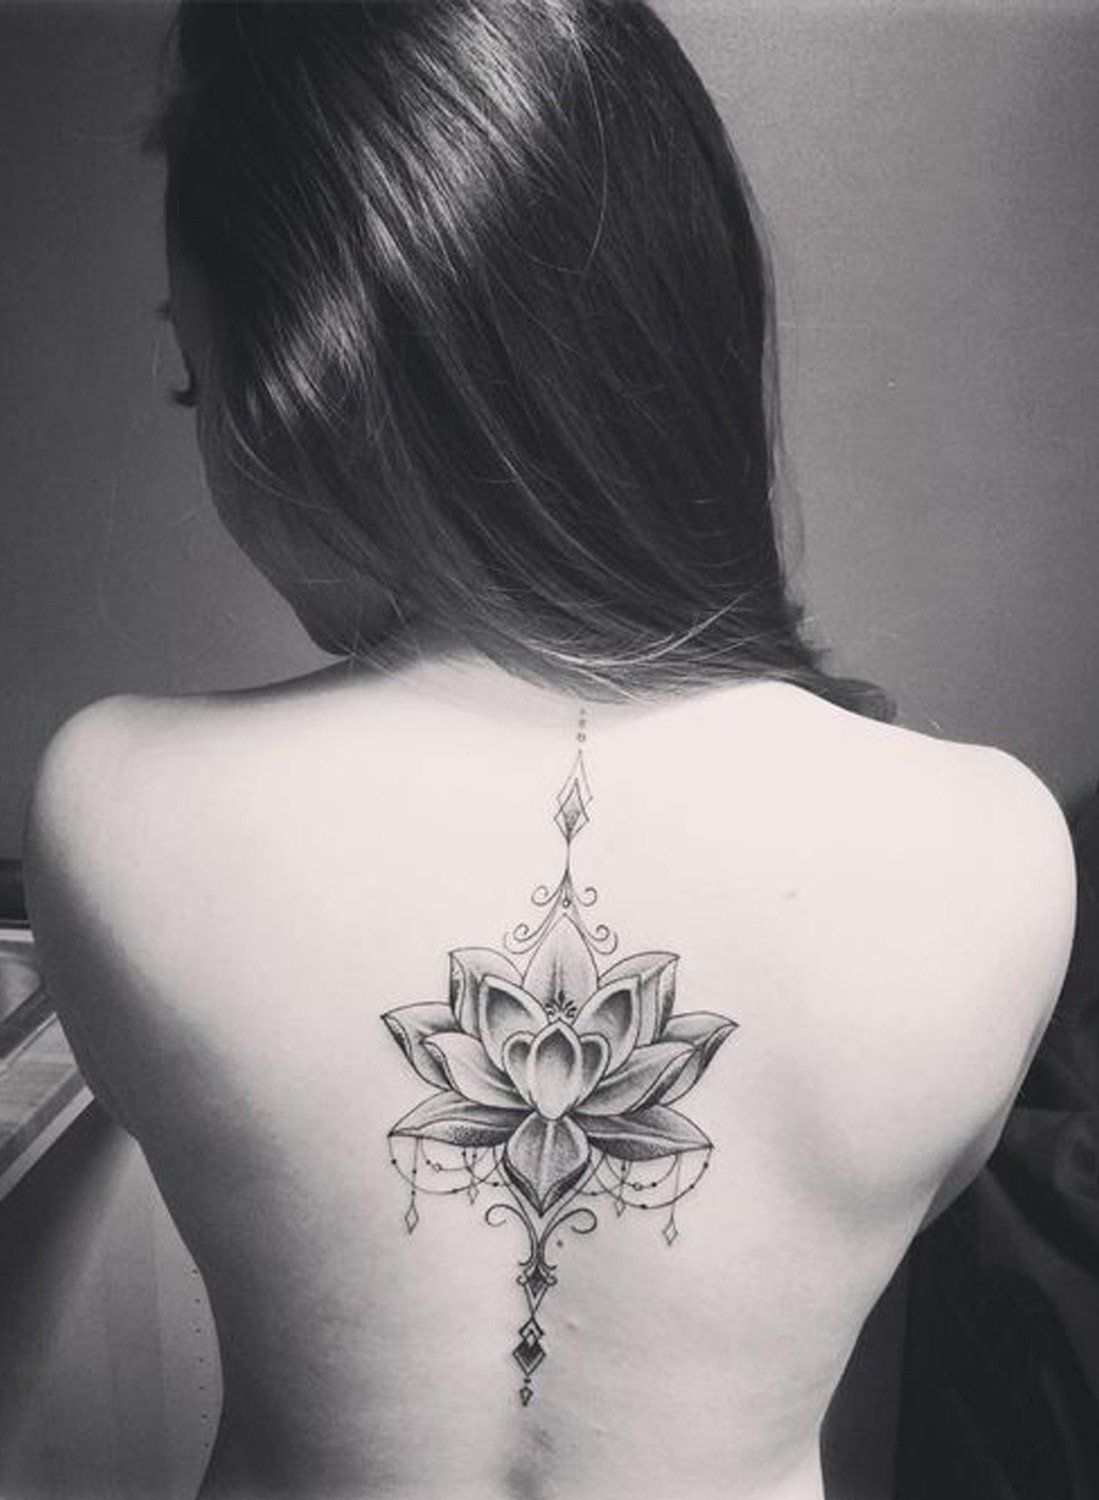 100 Most Popular Lotus Tattoos Ideas For Women Flower Spine Tattoos Spine Tattoos Spine Tattoo